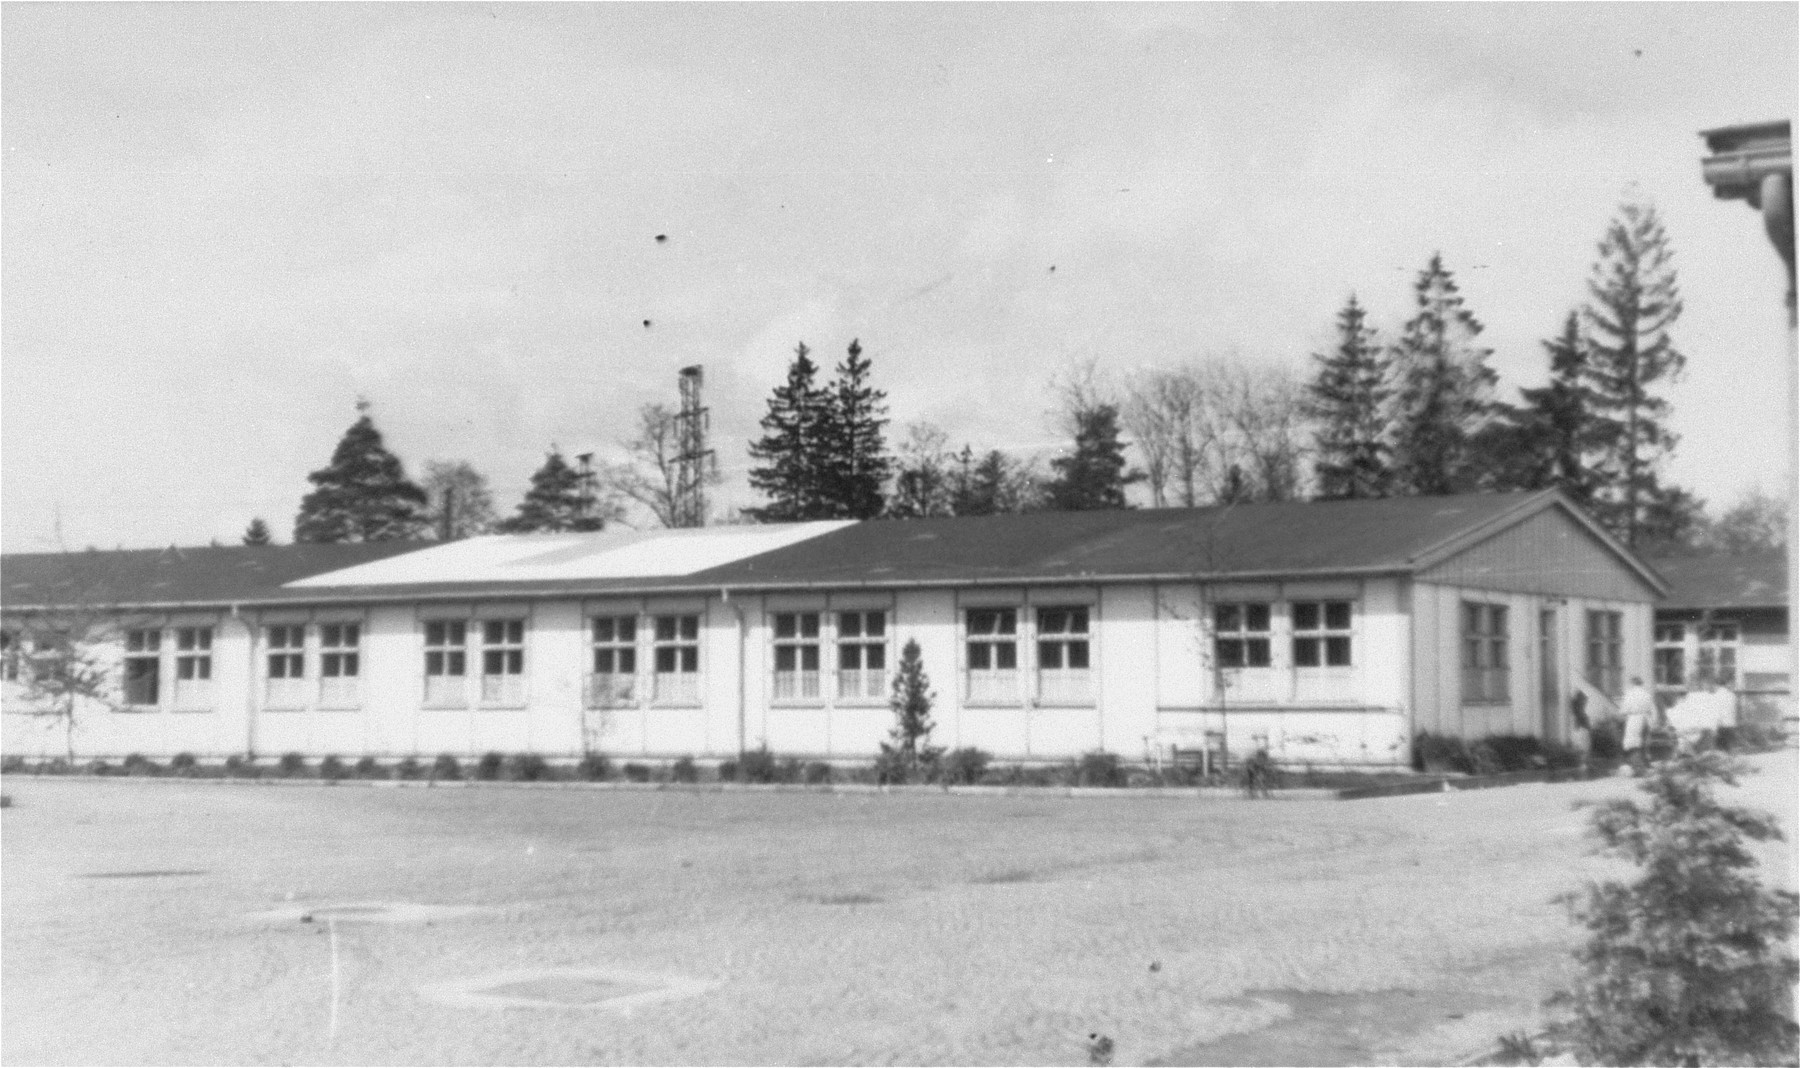 An infirmary in the Dachau concentration camp.